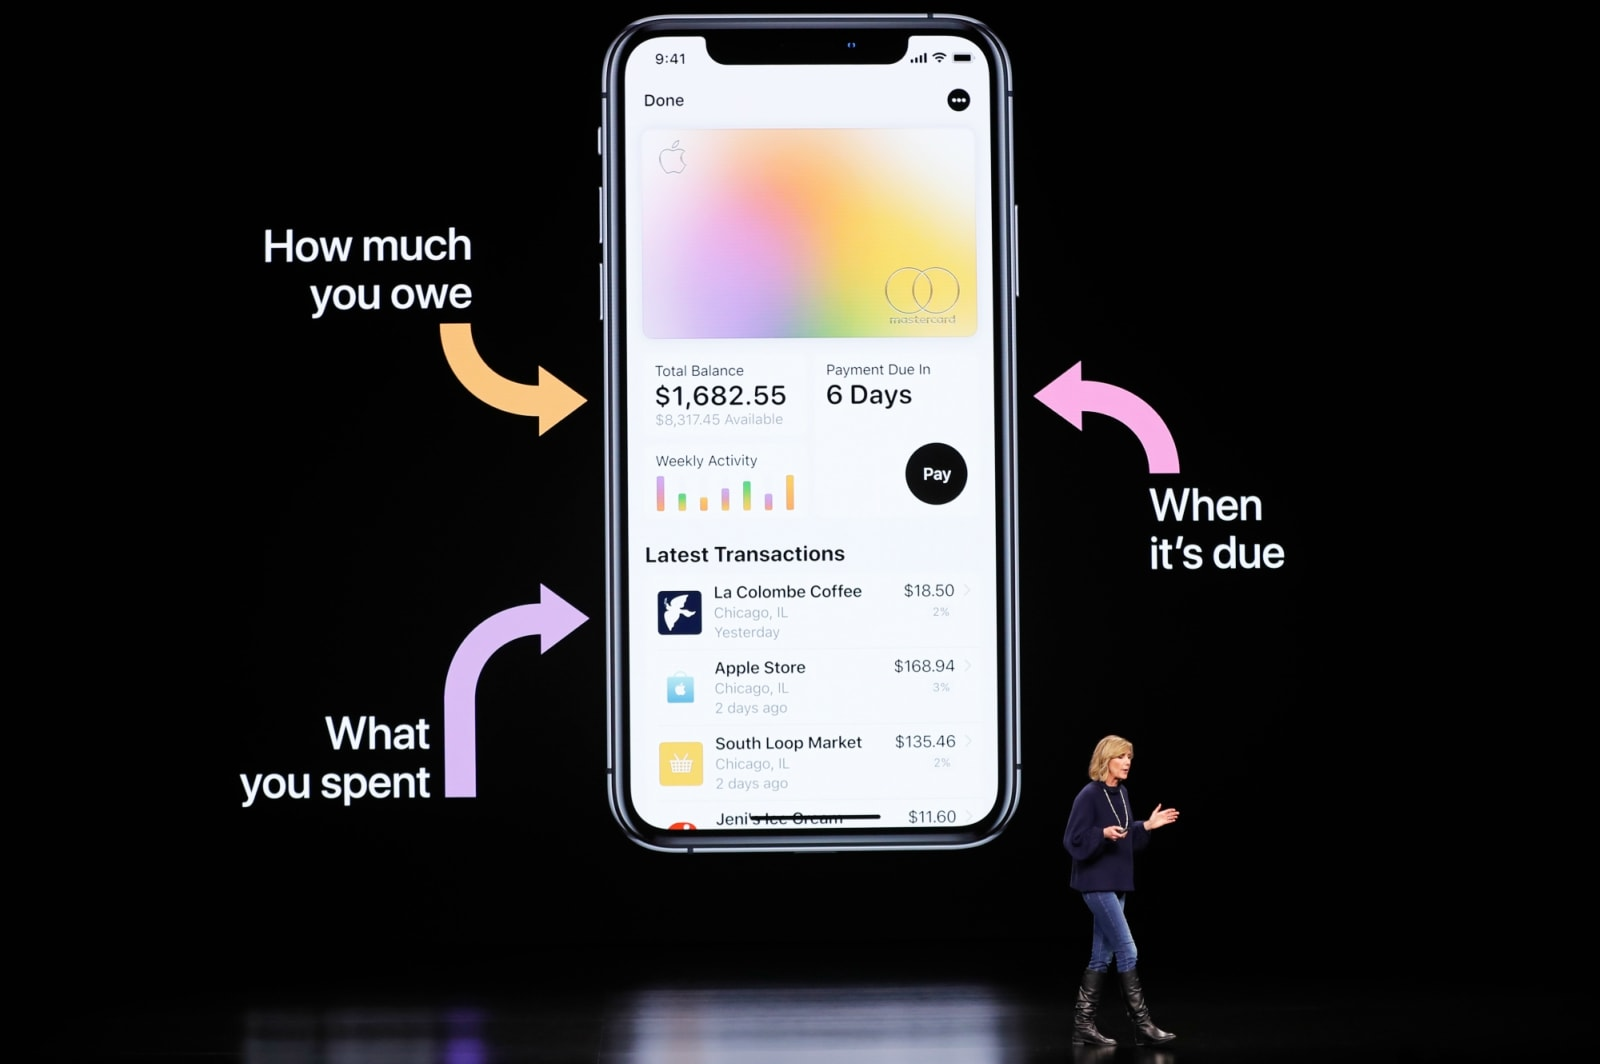 Jennifer Bailey, VP Apple Pay at Apple, speaks during an Apple special event at the Steve Jobs Theater in Cupertino, California, US, March 25, 2019. REUTERS/Stephen Lam